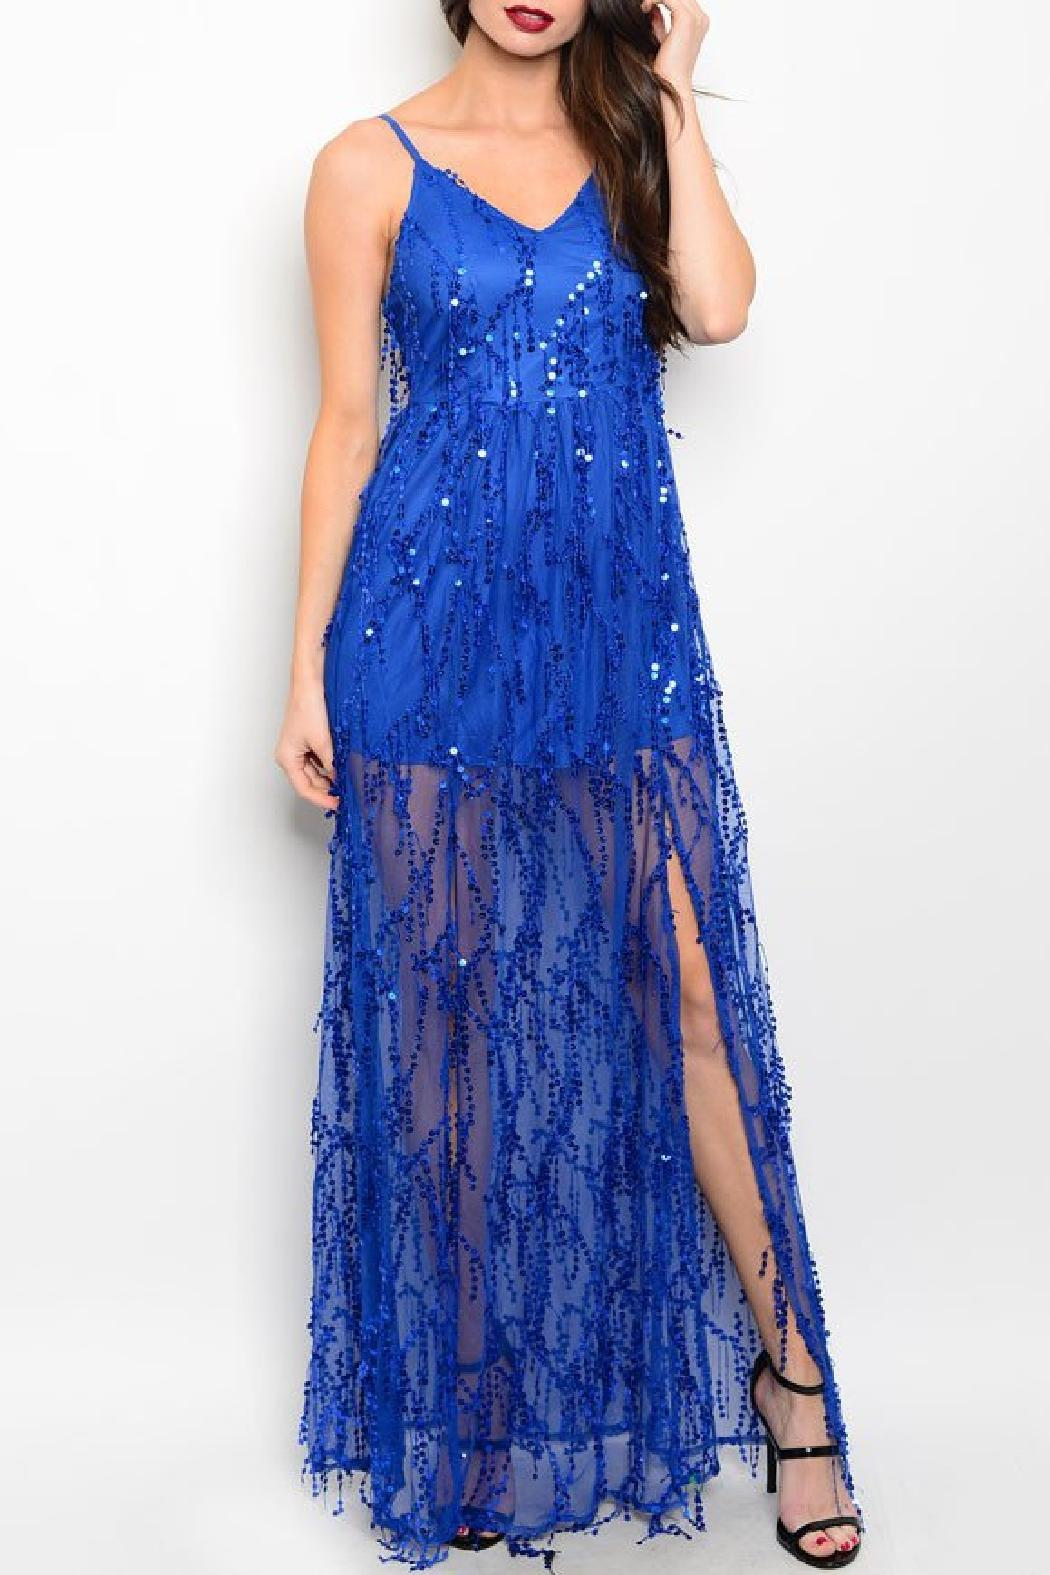 Adore Clothes & More Long Sequin Gown - Main Image